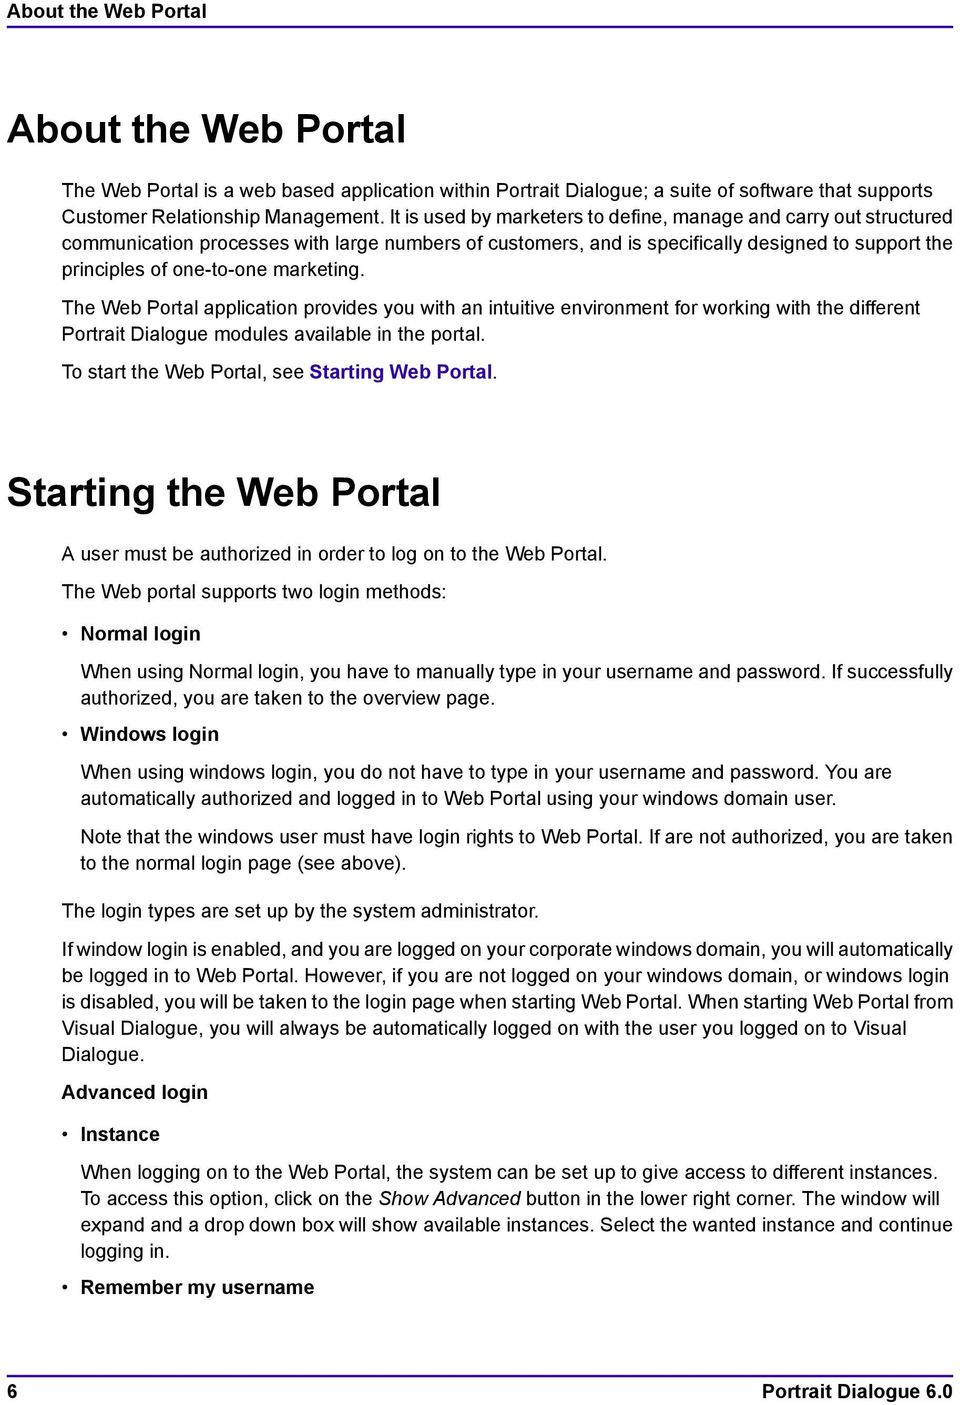 marketing. The Web Portal application provides you with an intuitive environment for working with the different Portrait Dialogue modules available in the portal.